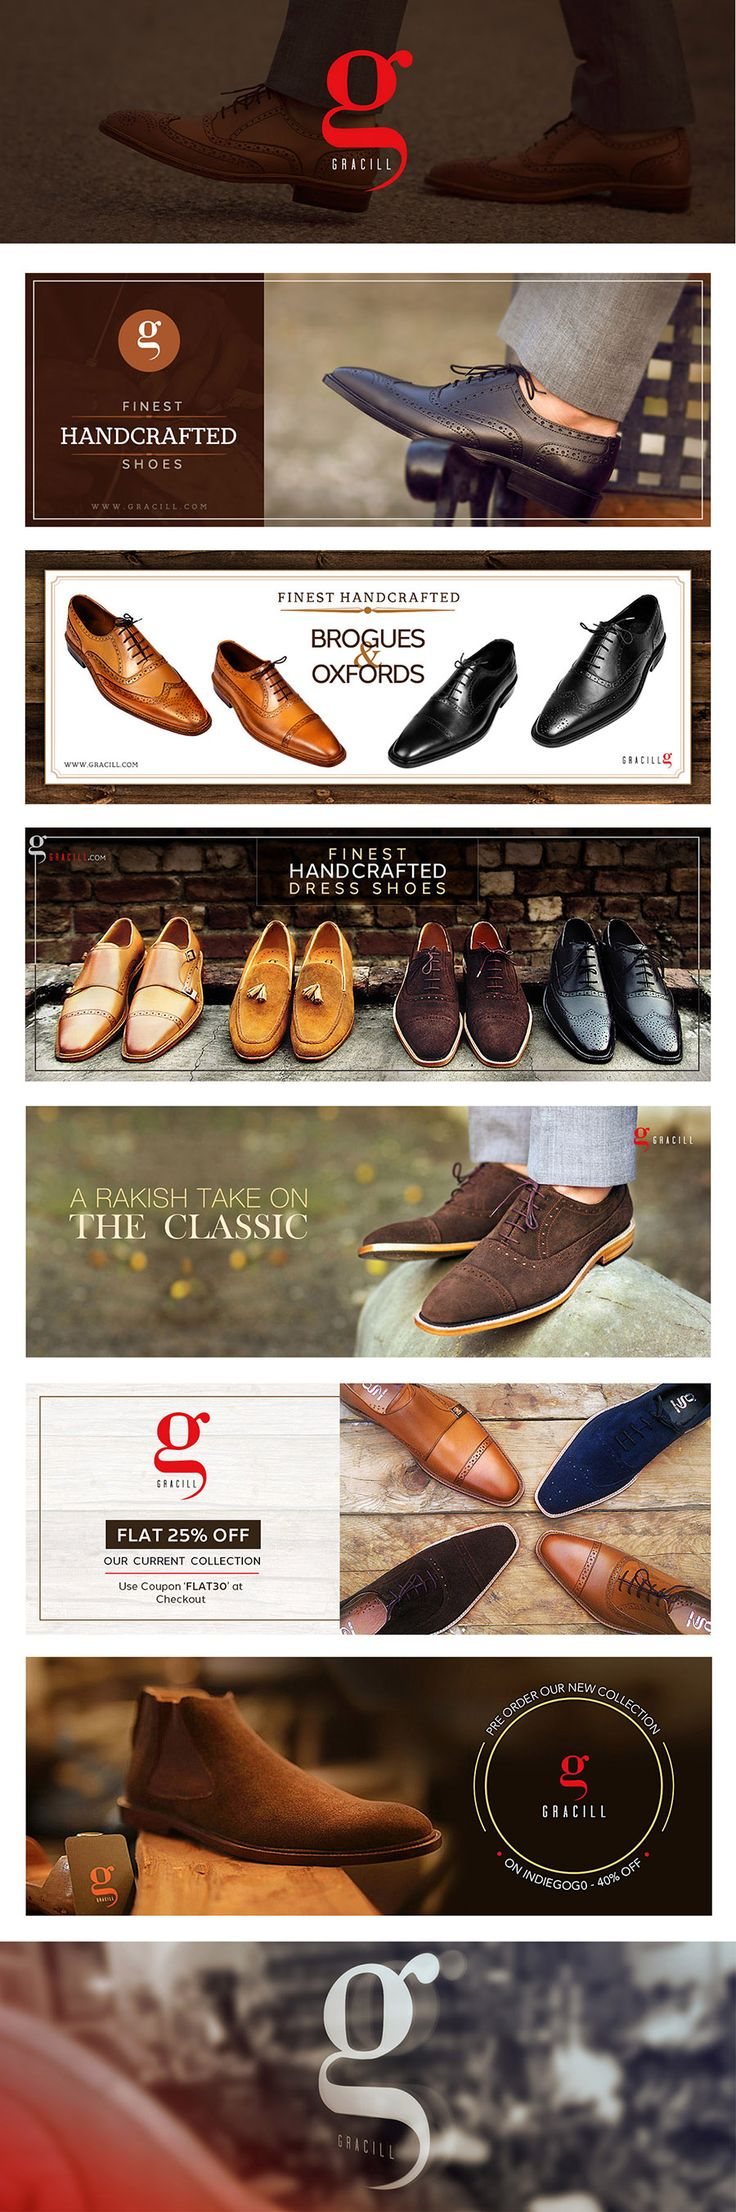 Website banners/FB-Page-Covers for www.gracill.com (Premium Handcrafted Men Shoes) :: Designed by: www.skin3design.com